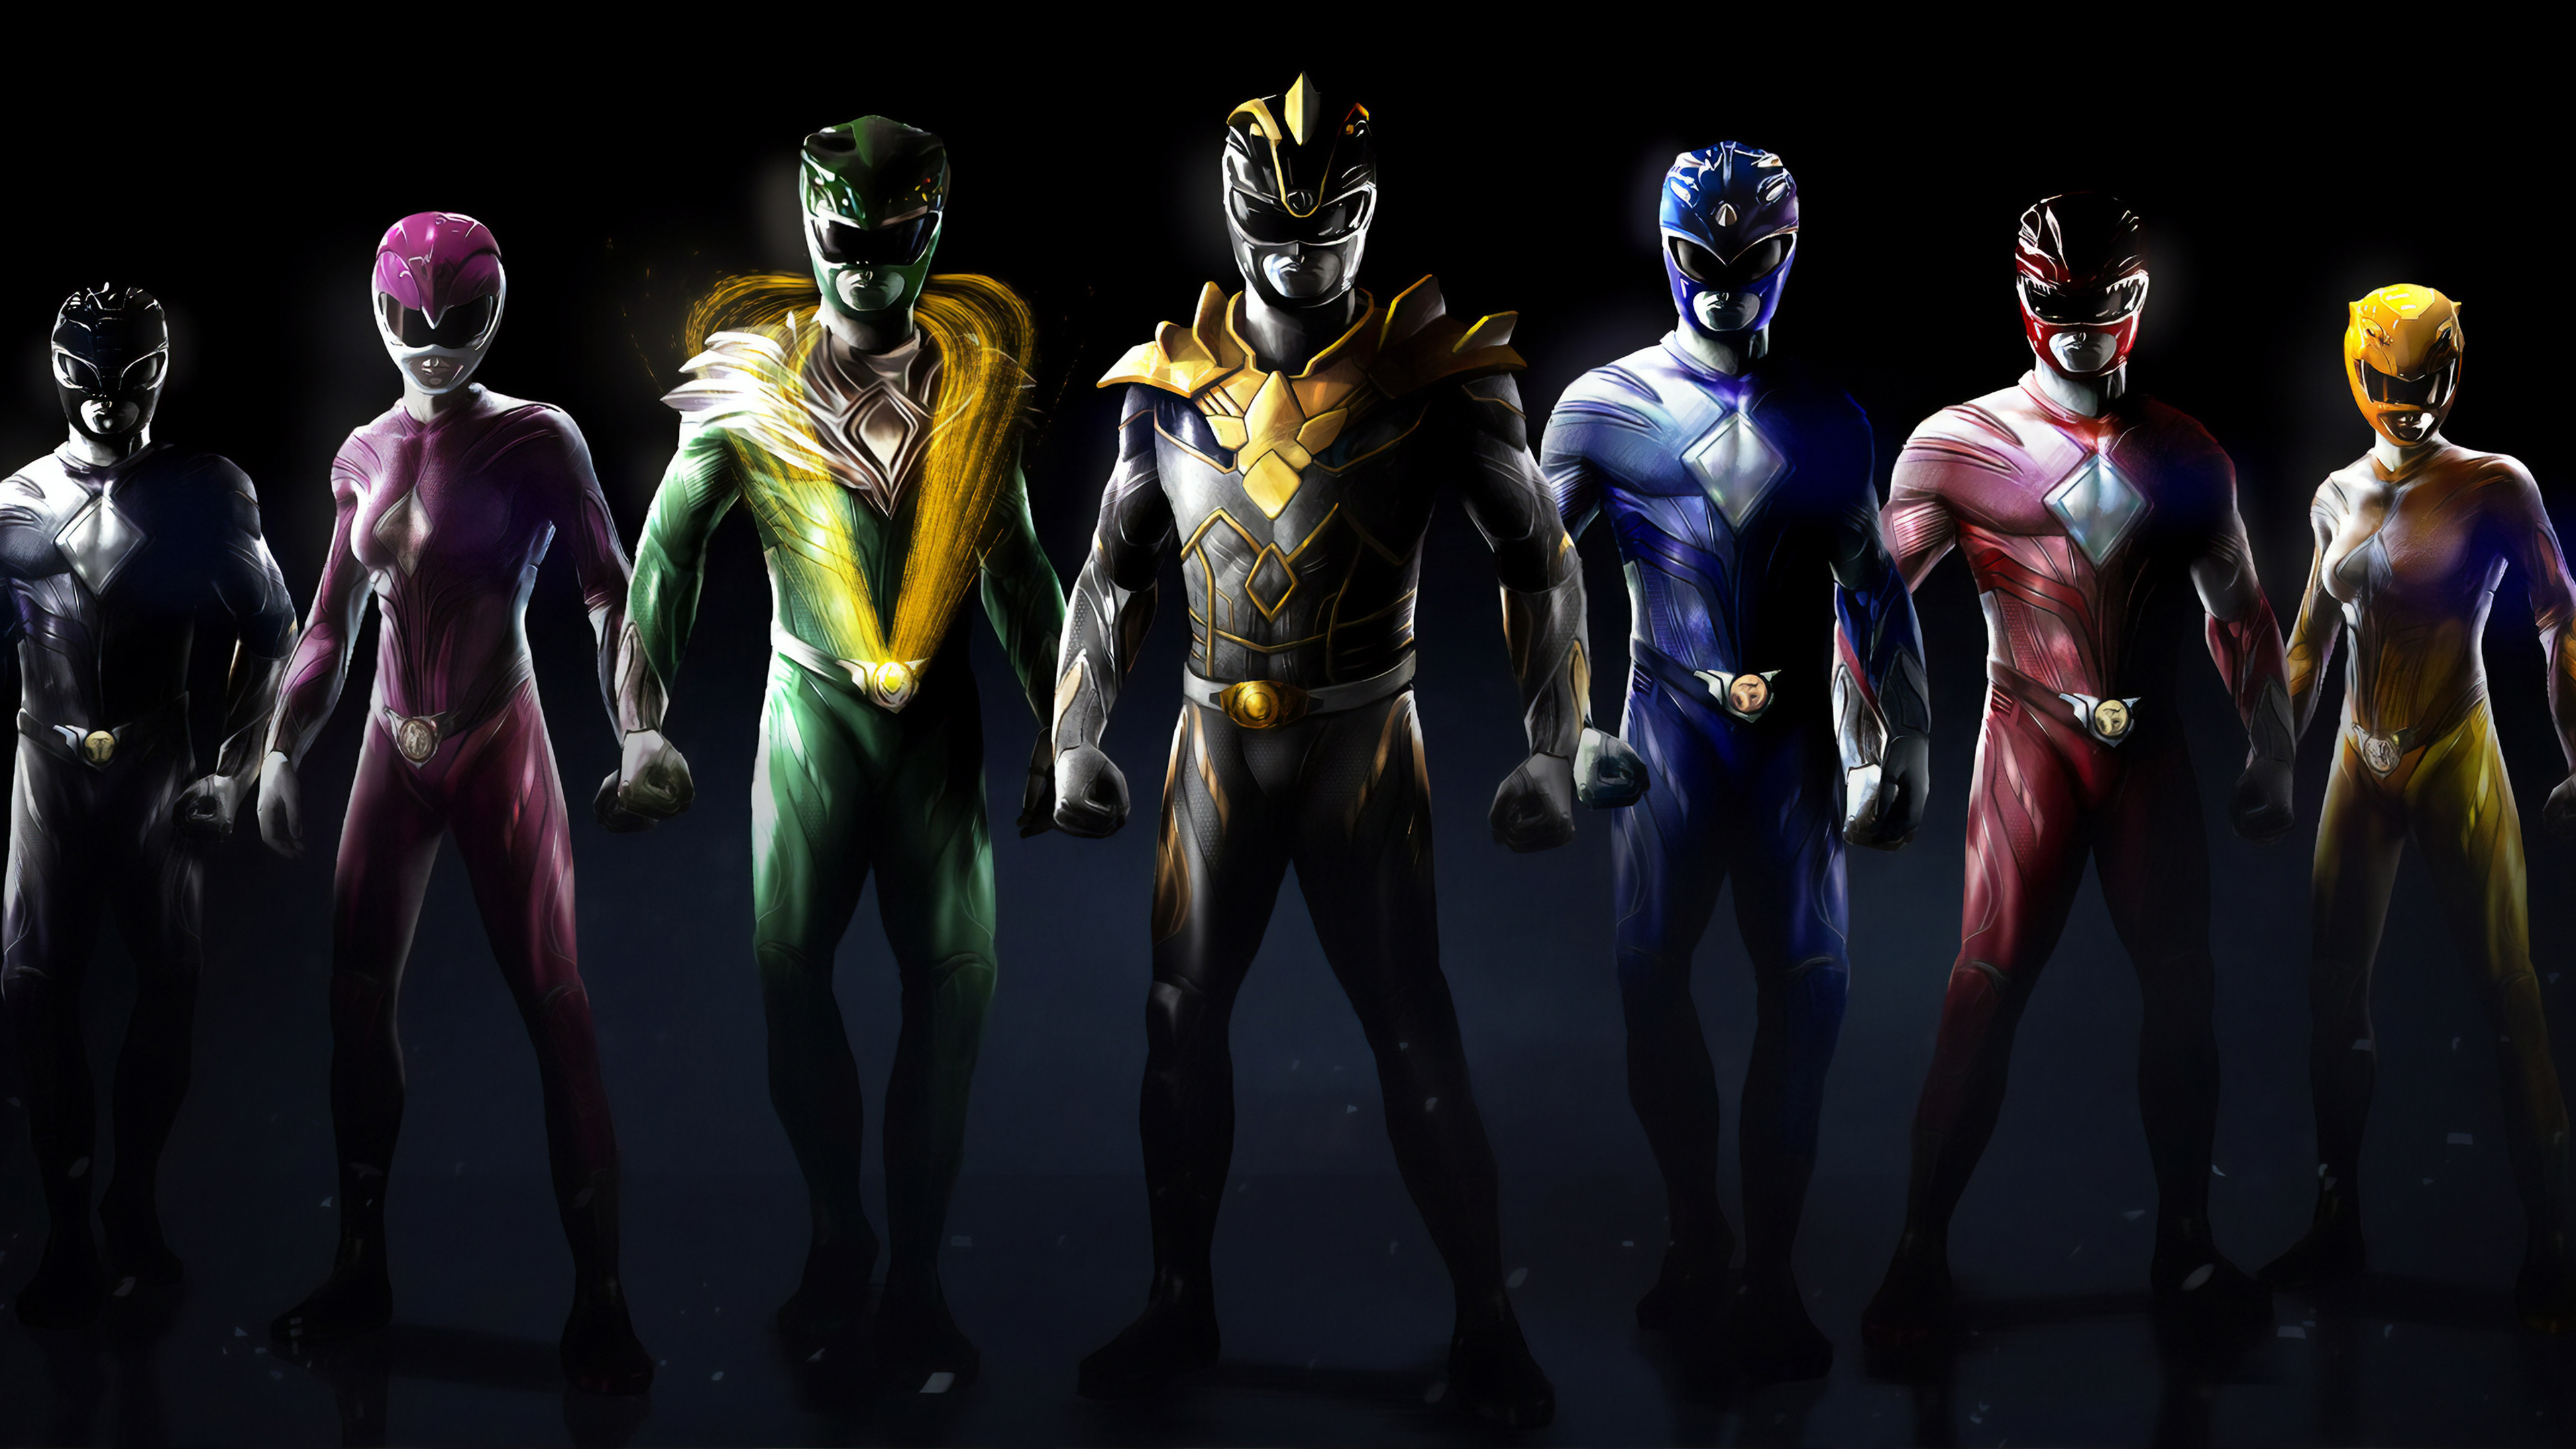 all power rangers 1570394619 - All Power Rangers - superheroes wallpapers, power rangers wallpapers, hd-wallpapers, artstation wallpapers, 4k-wallpapers